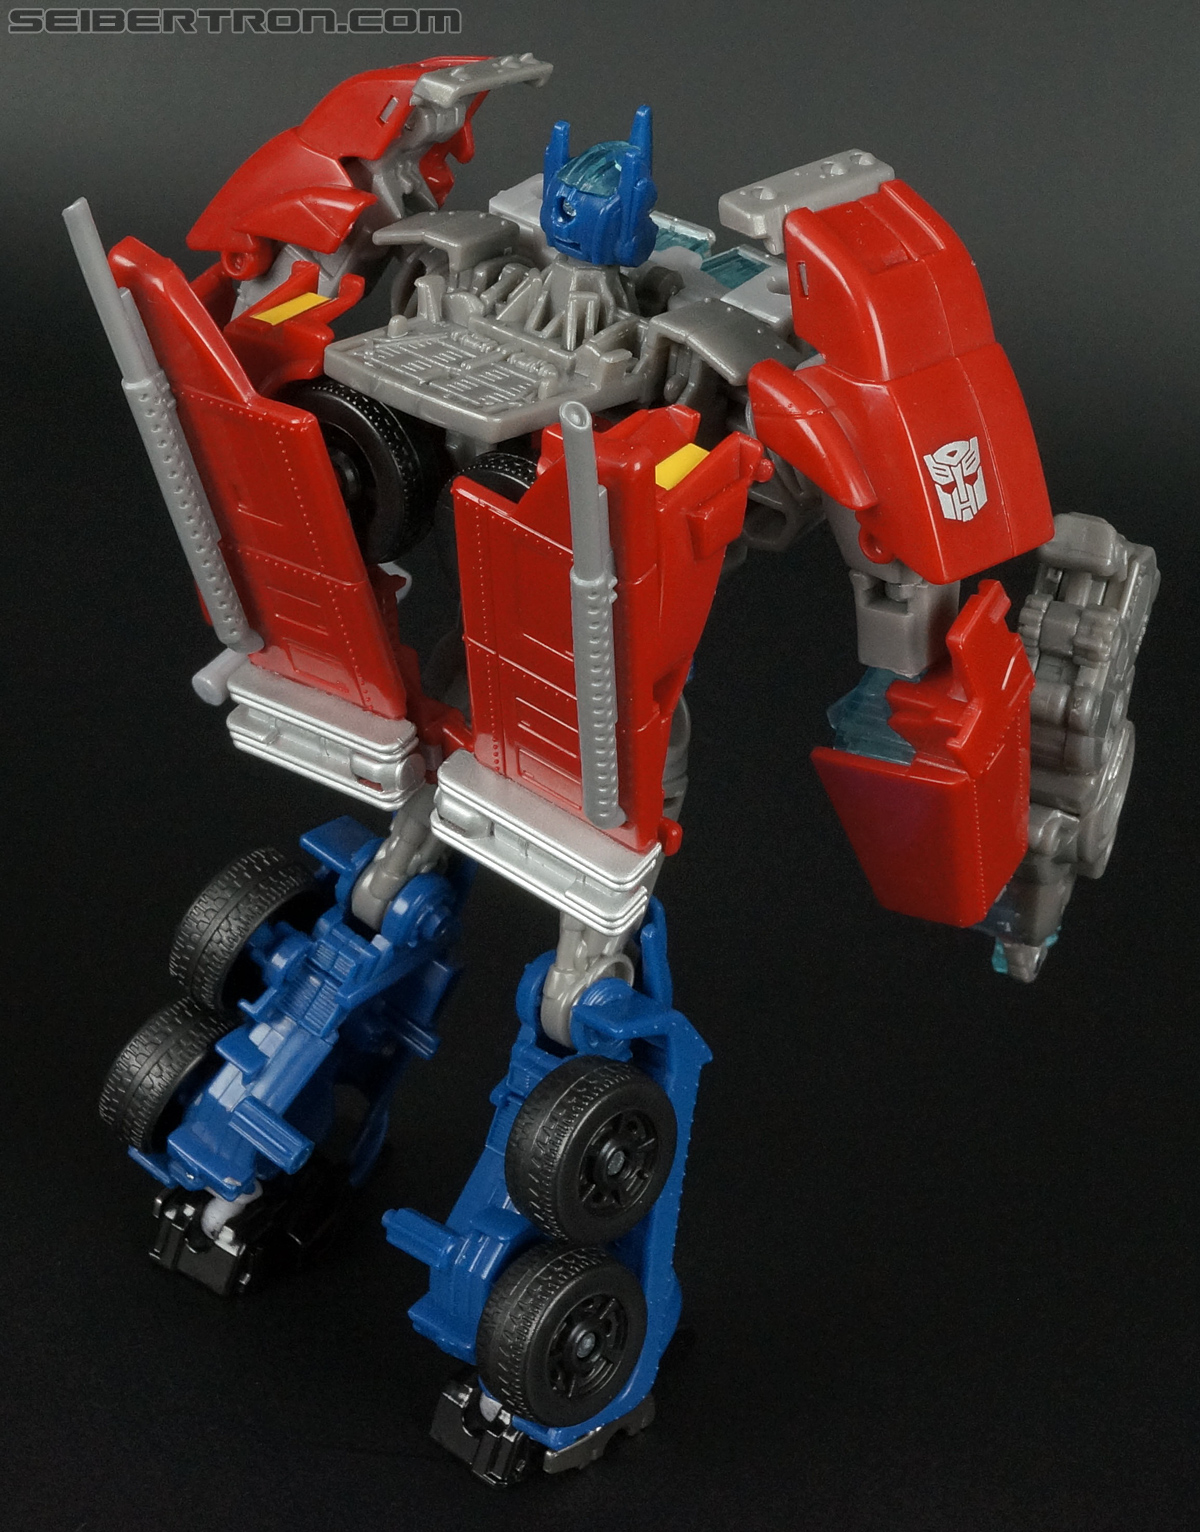 Transformers Prime: Robots In Disguise Optimus Prime (Image #97 of 176)